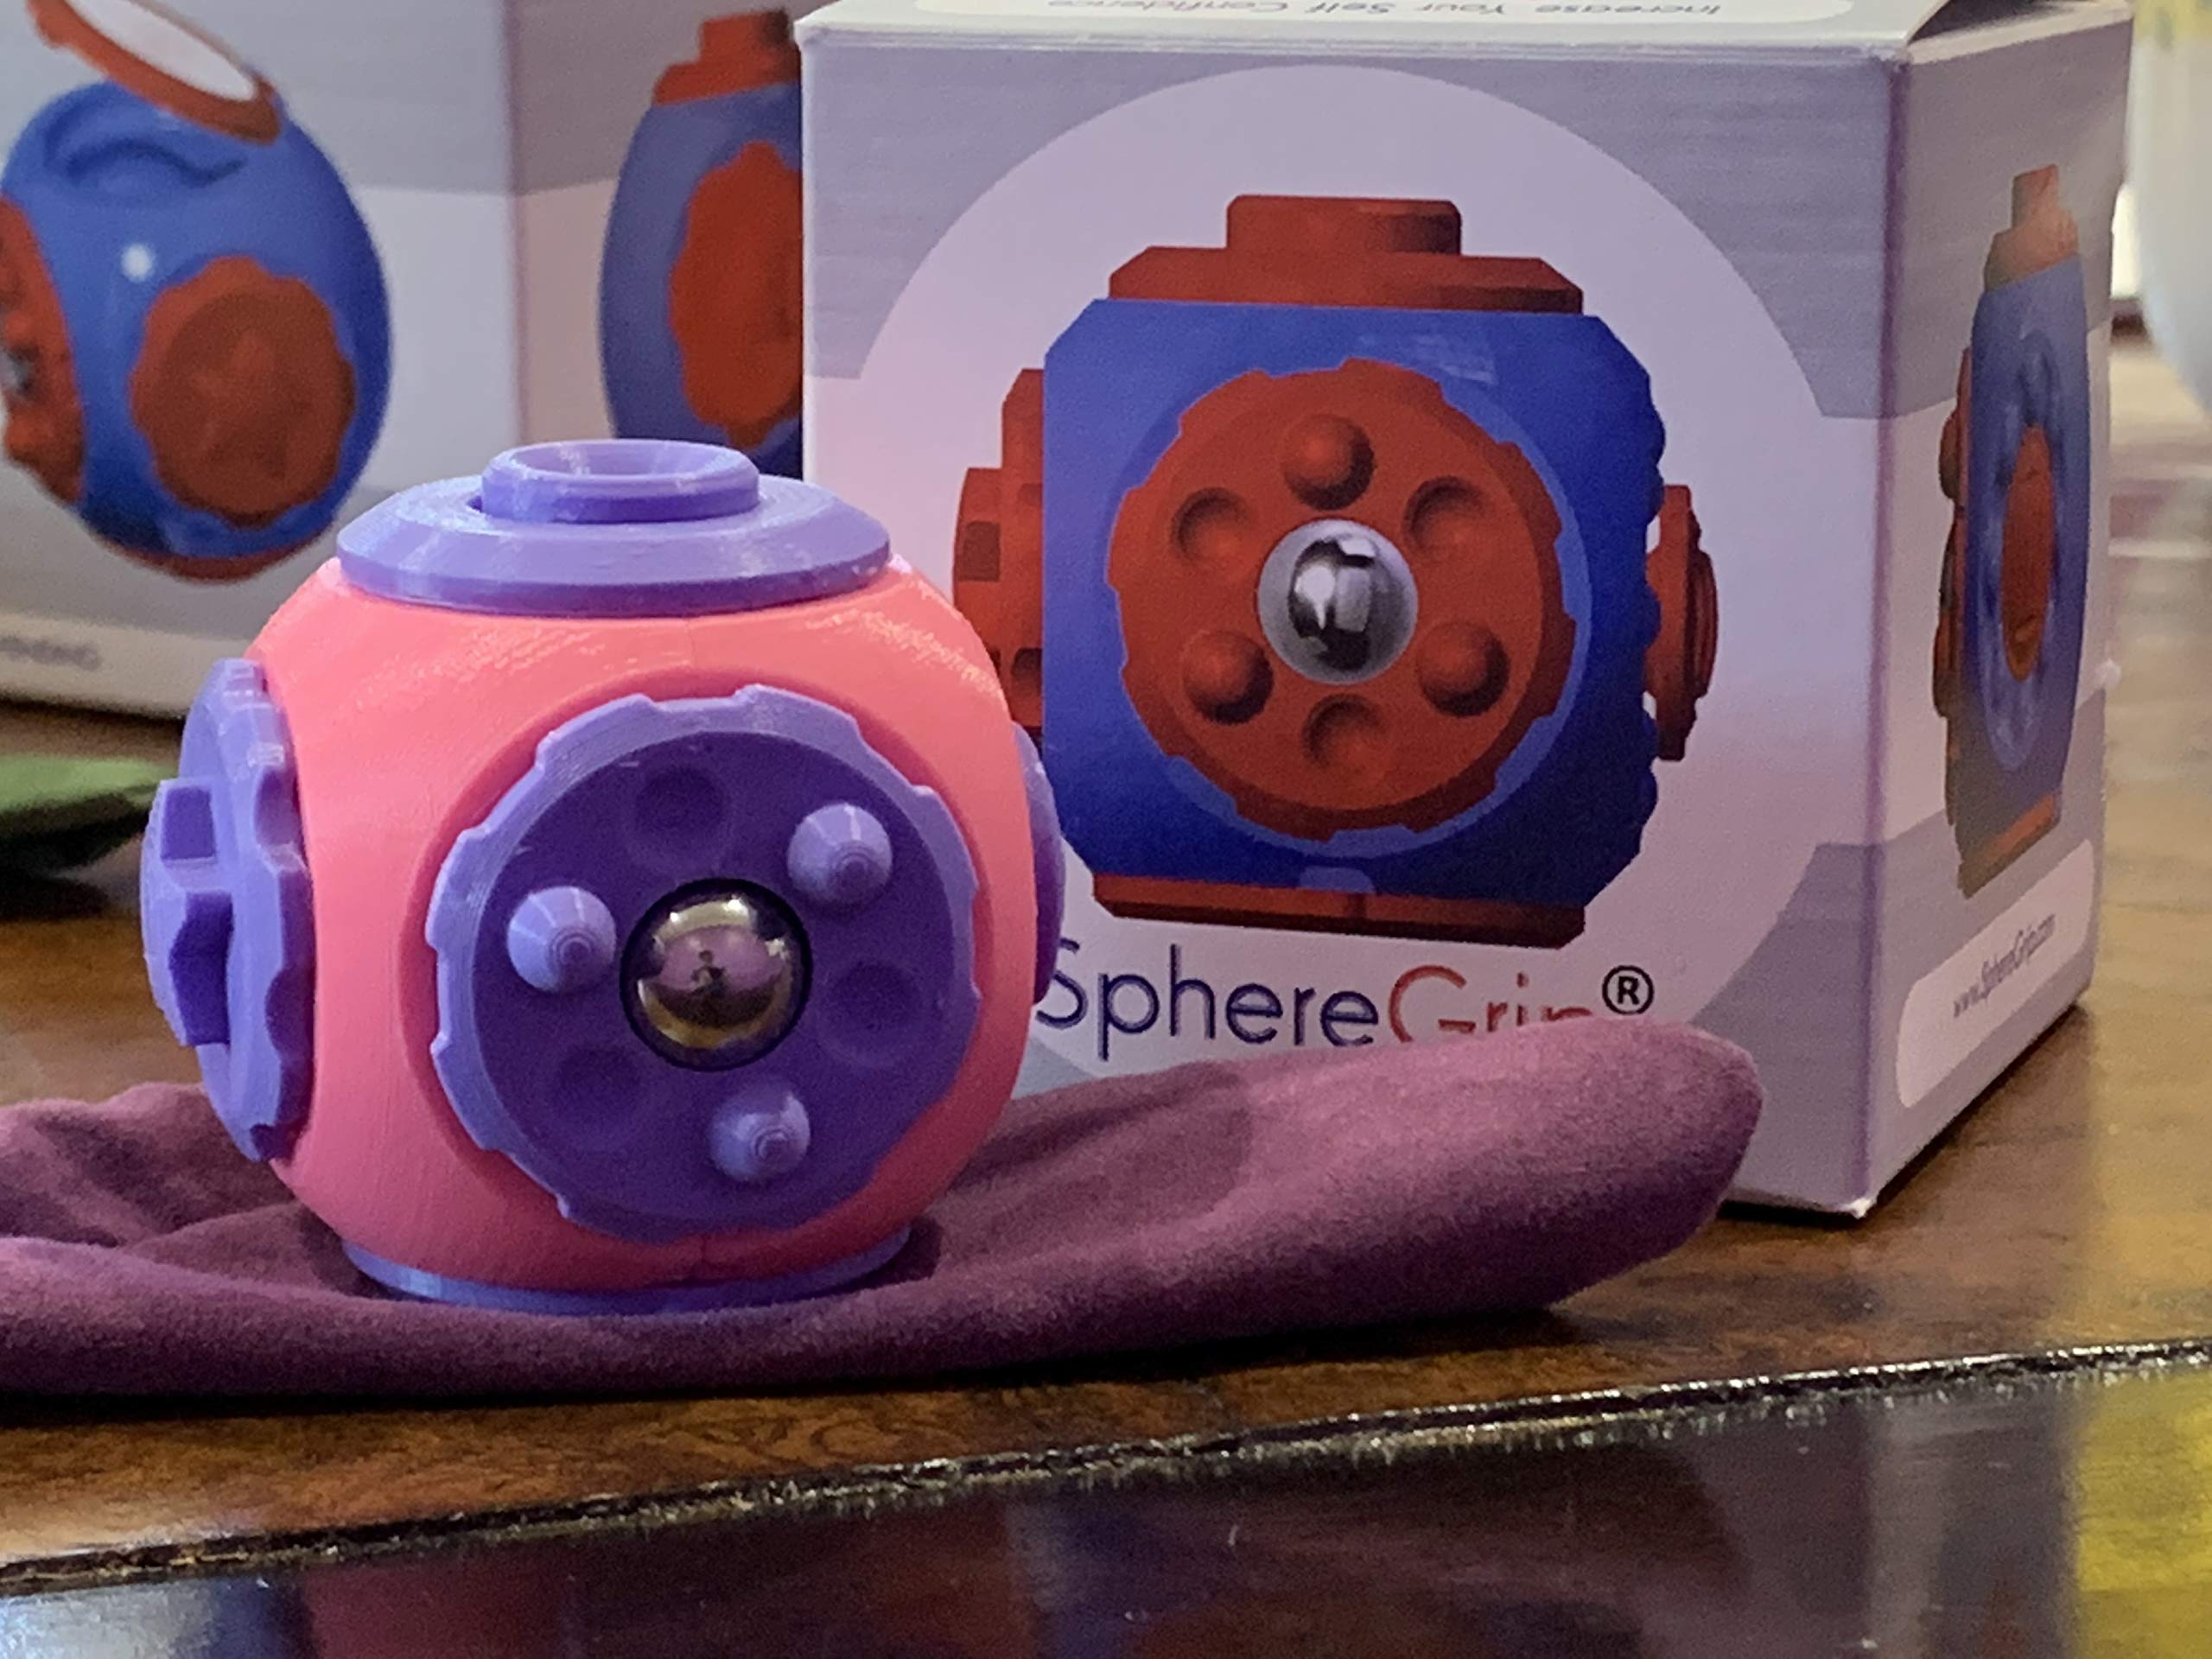 SphereGrip, Fidget toy, Reduce Anxiety and Stress, Increase Self-confidence, Fidget, Storage, Mirror (All 6 combinations) by Arbi Design (Image #6)